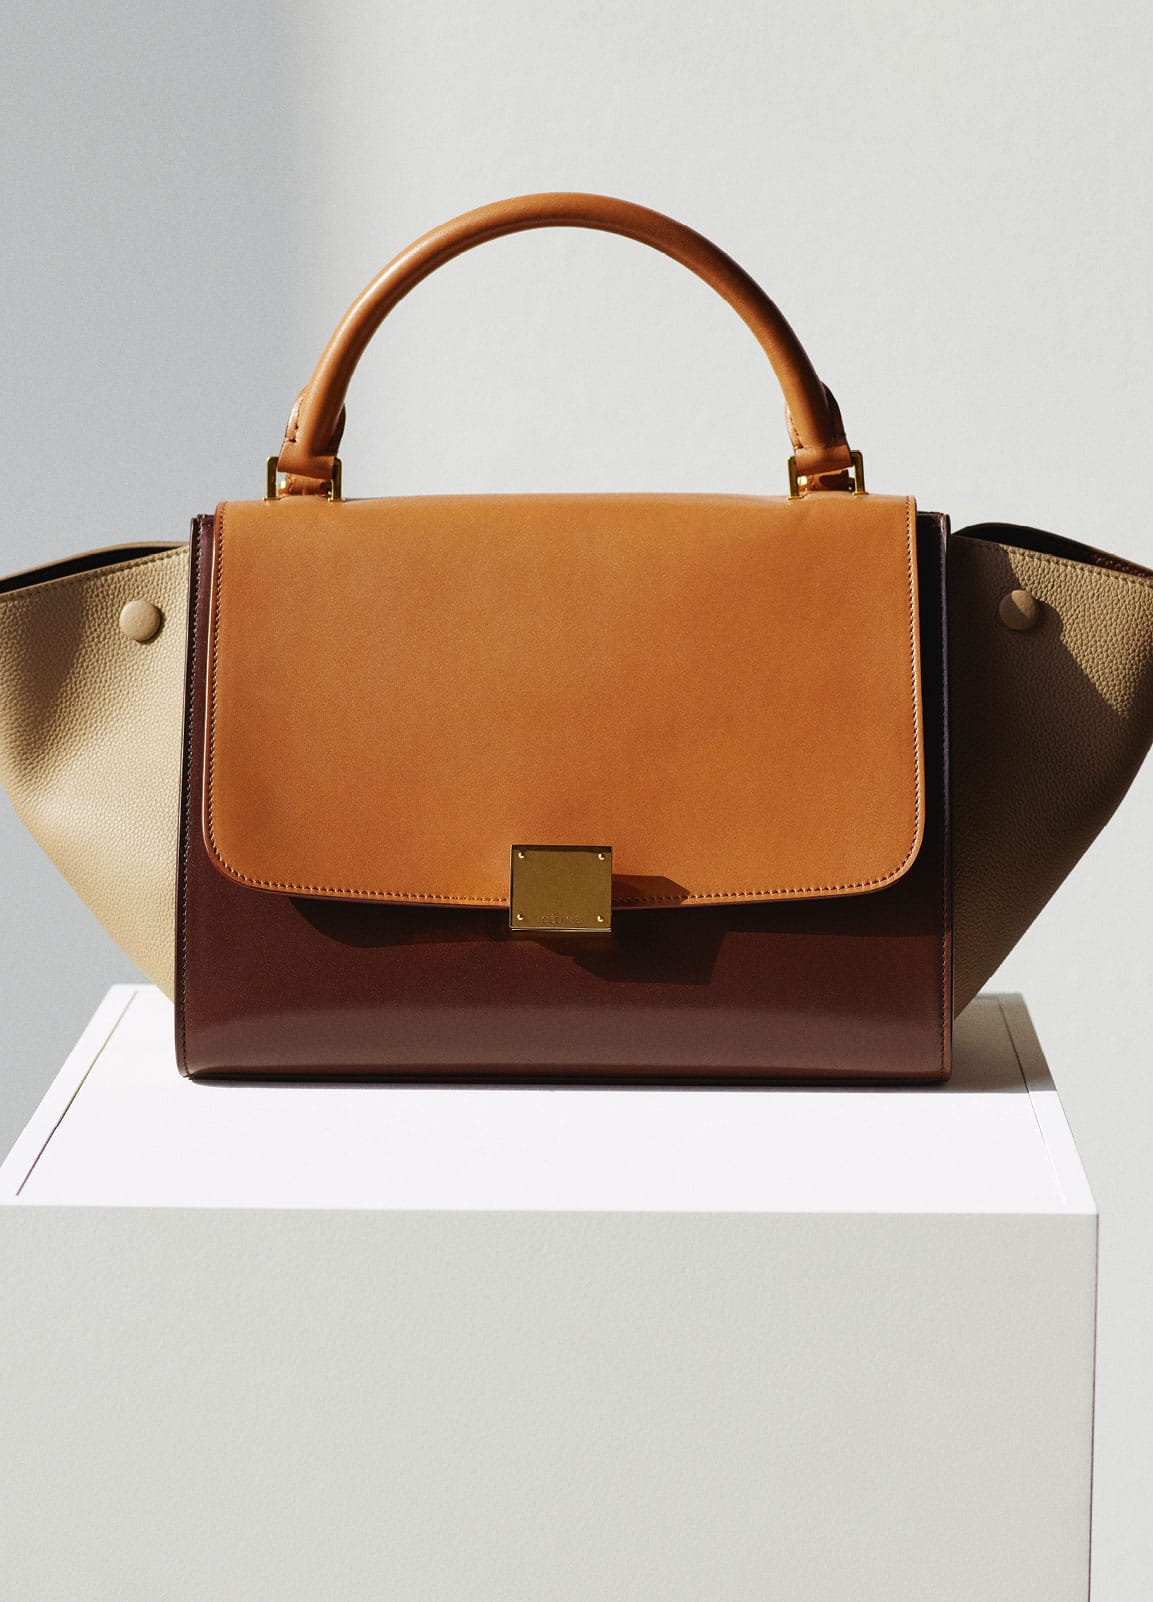 celine brown bag